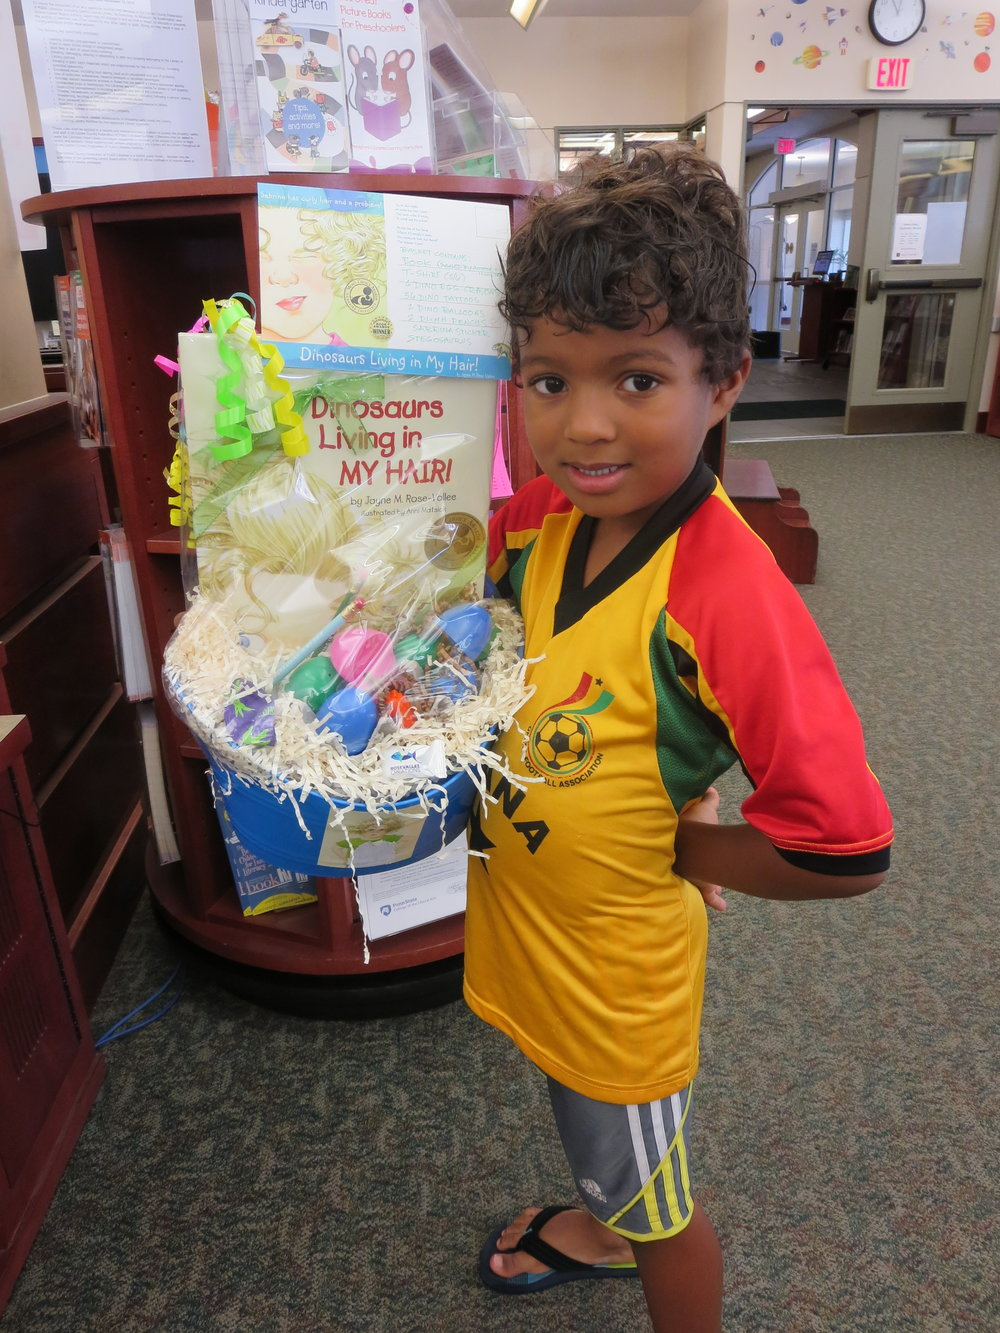 """Hello DLIMH followers!  Meet Julian, happy winner of our fun-loaded """"dinobasket"""" offered to participants in Schlow Centre Region Library Children's Summer Reading Program in State College, Pennsylvania. Kids earn tickets for prizes by reading books and dropping the tickets into boxes set out next to each prize, displayed on the book cases all summer as incentives. Our young winner's curly hair appears to have serious dino potential which might be what led him to our box (aside from all the cool dino stuff)!  DLIMH illustrator Anni Matsick is guesting today, here to tell everyone about our fun-filled prize awarded recently at her community library and how you can make a """"dinobasket"""" of your own!"""